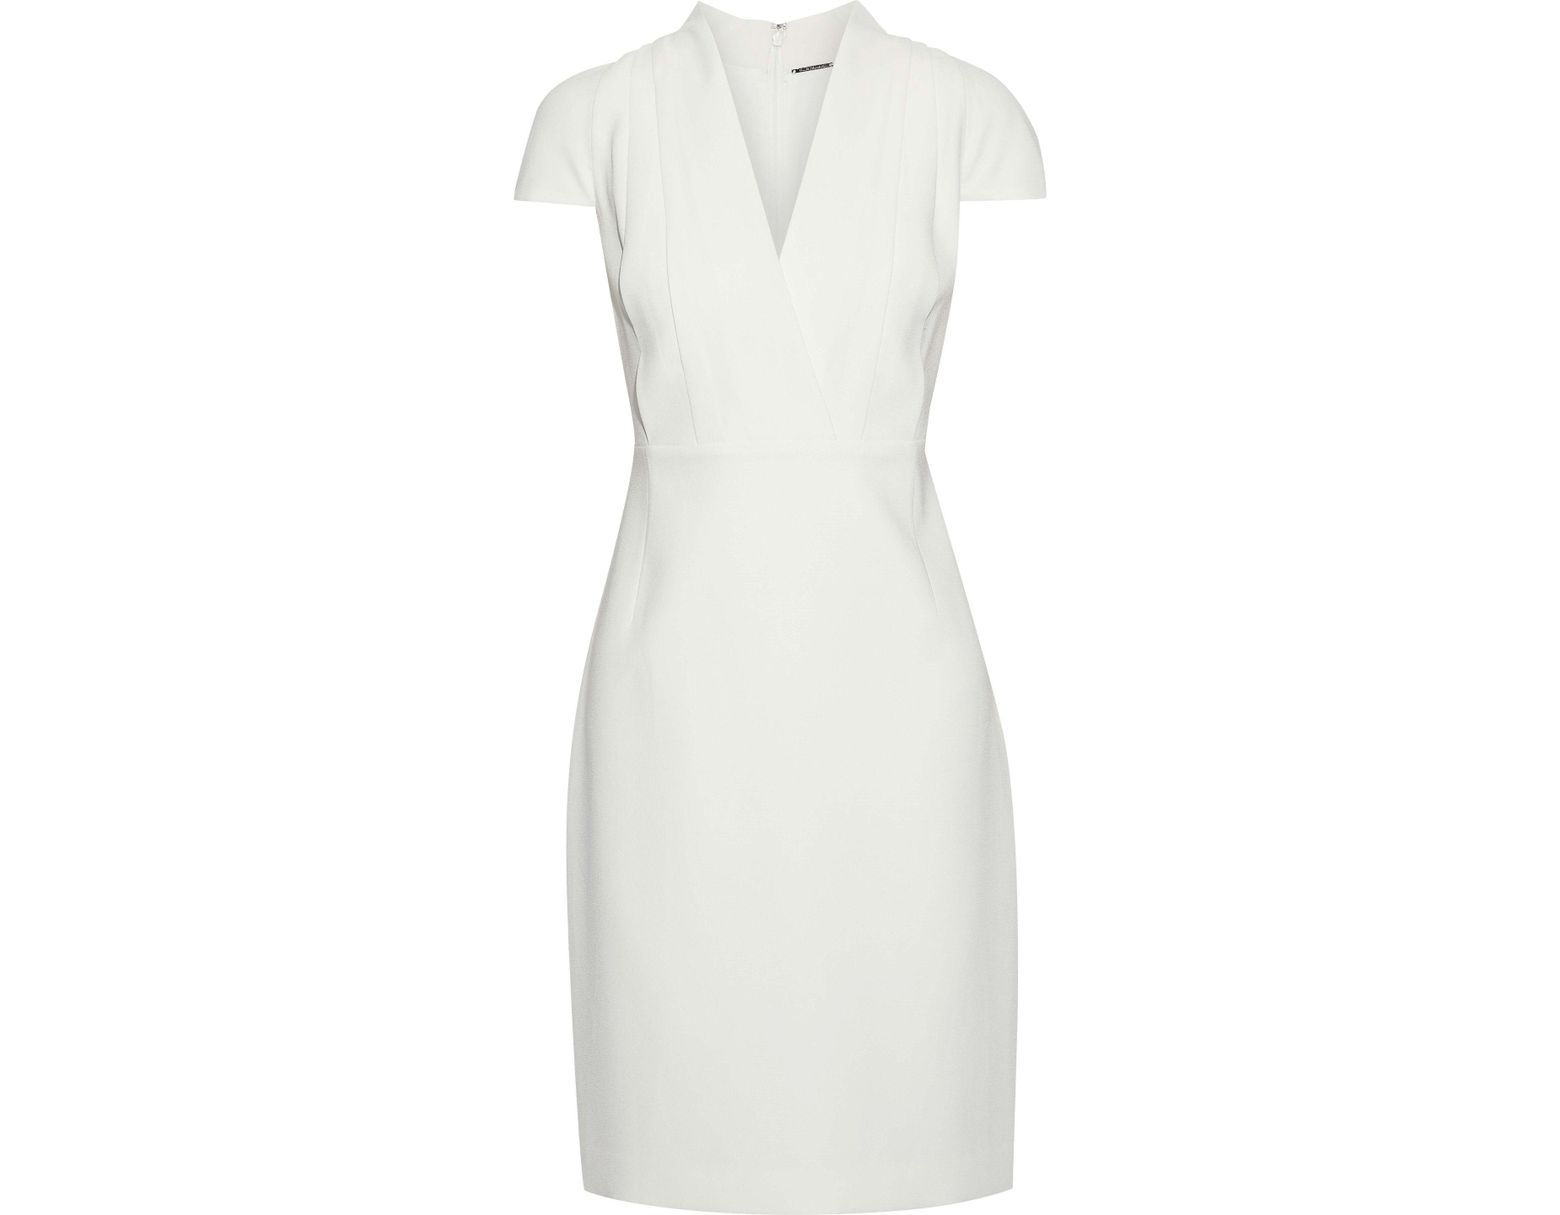 71322877 Elie Tahari Woman Gerarda Pleated Crepe Dress Ivory in White - Lyst